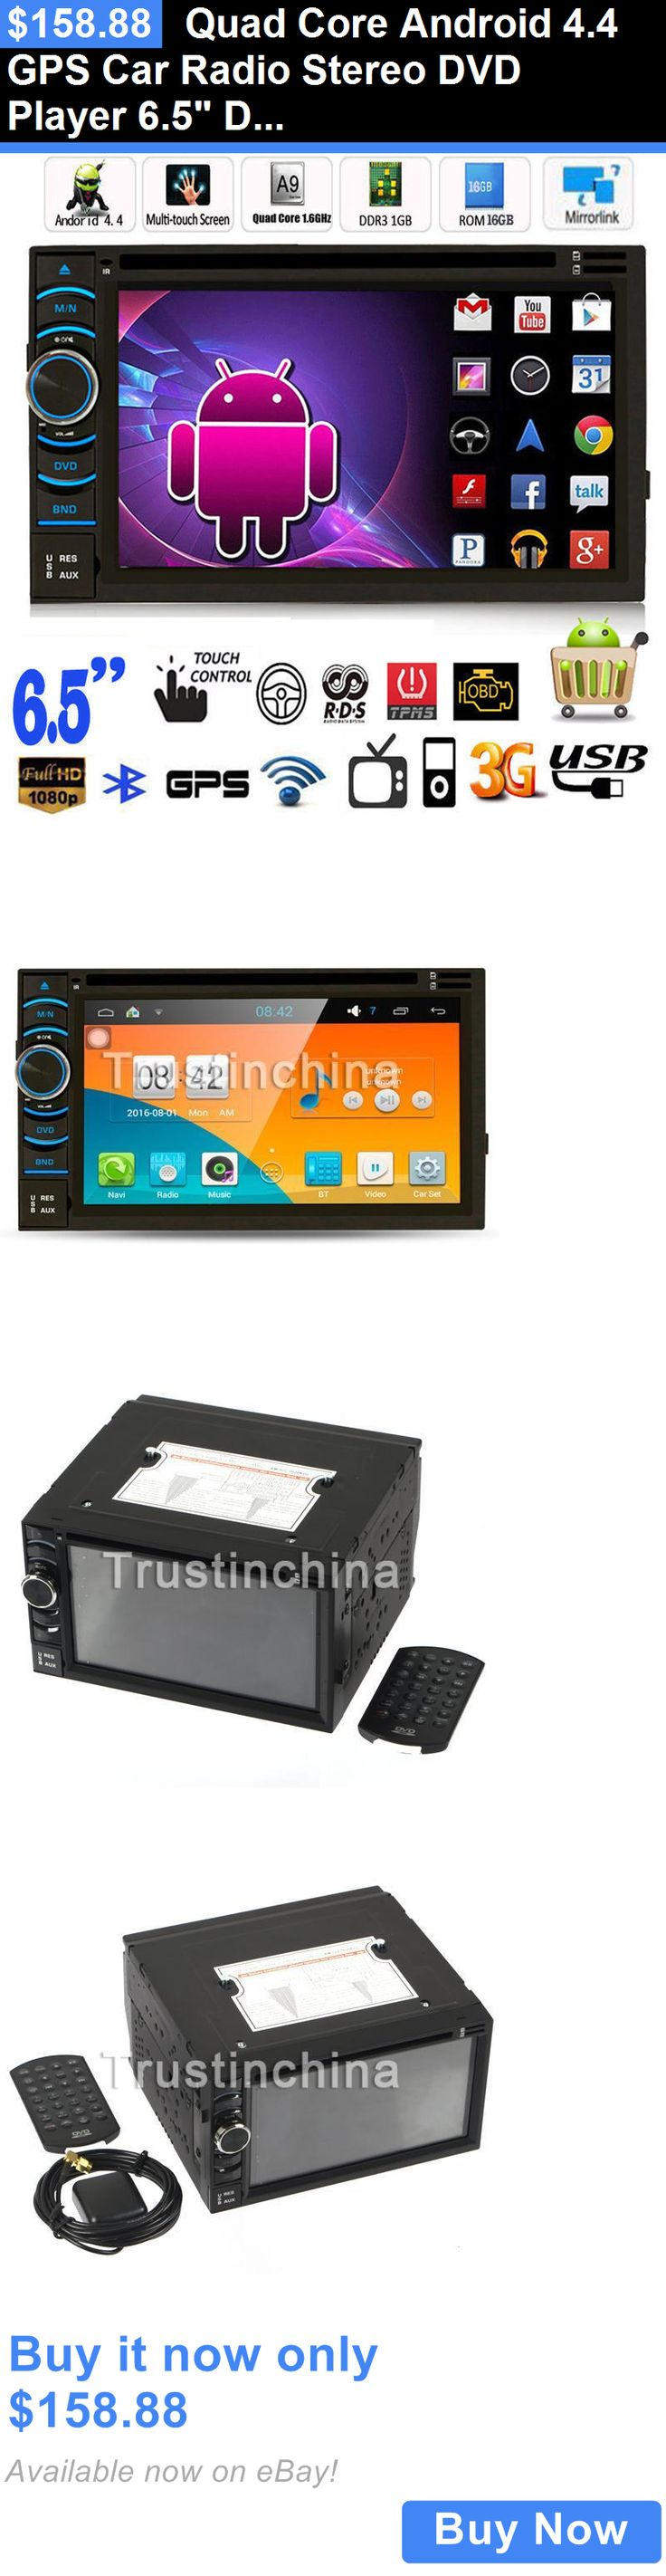 Vehicle Electronics And GPS: Quad Core Android 4.4 Gps Car Radio Stereo Dvd Player 6.5 Double 2 Din 3G Wifi BUY IT NOW ONLY: $158.88